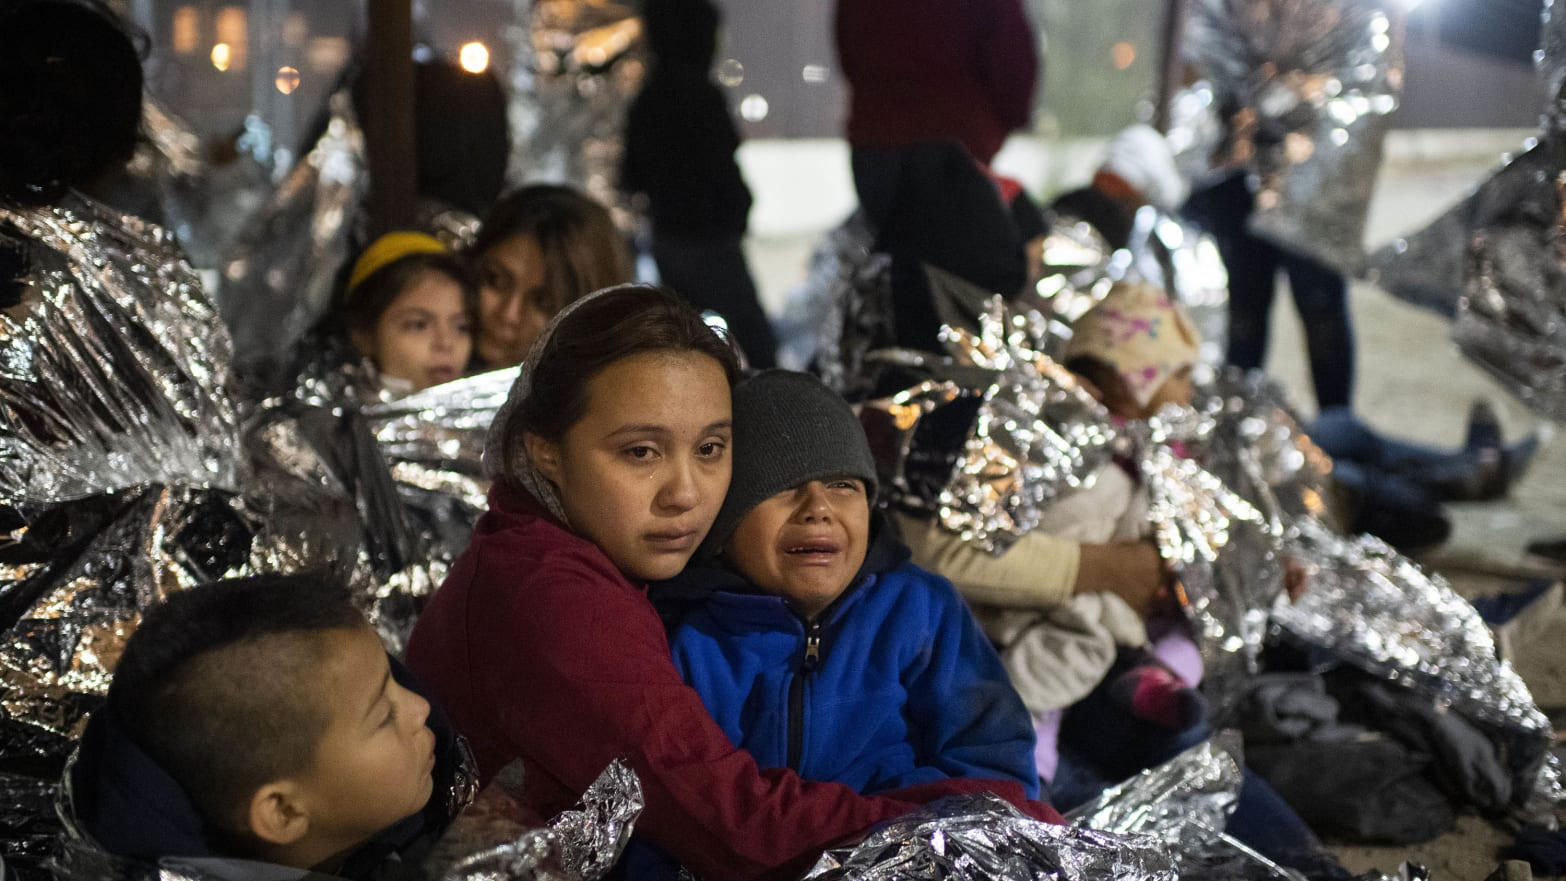 Barbarism at the Border Is Just as Shocking as the First Concentration Camps